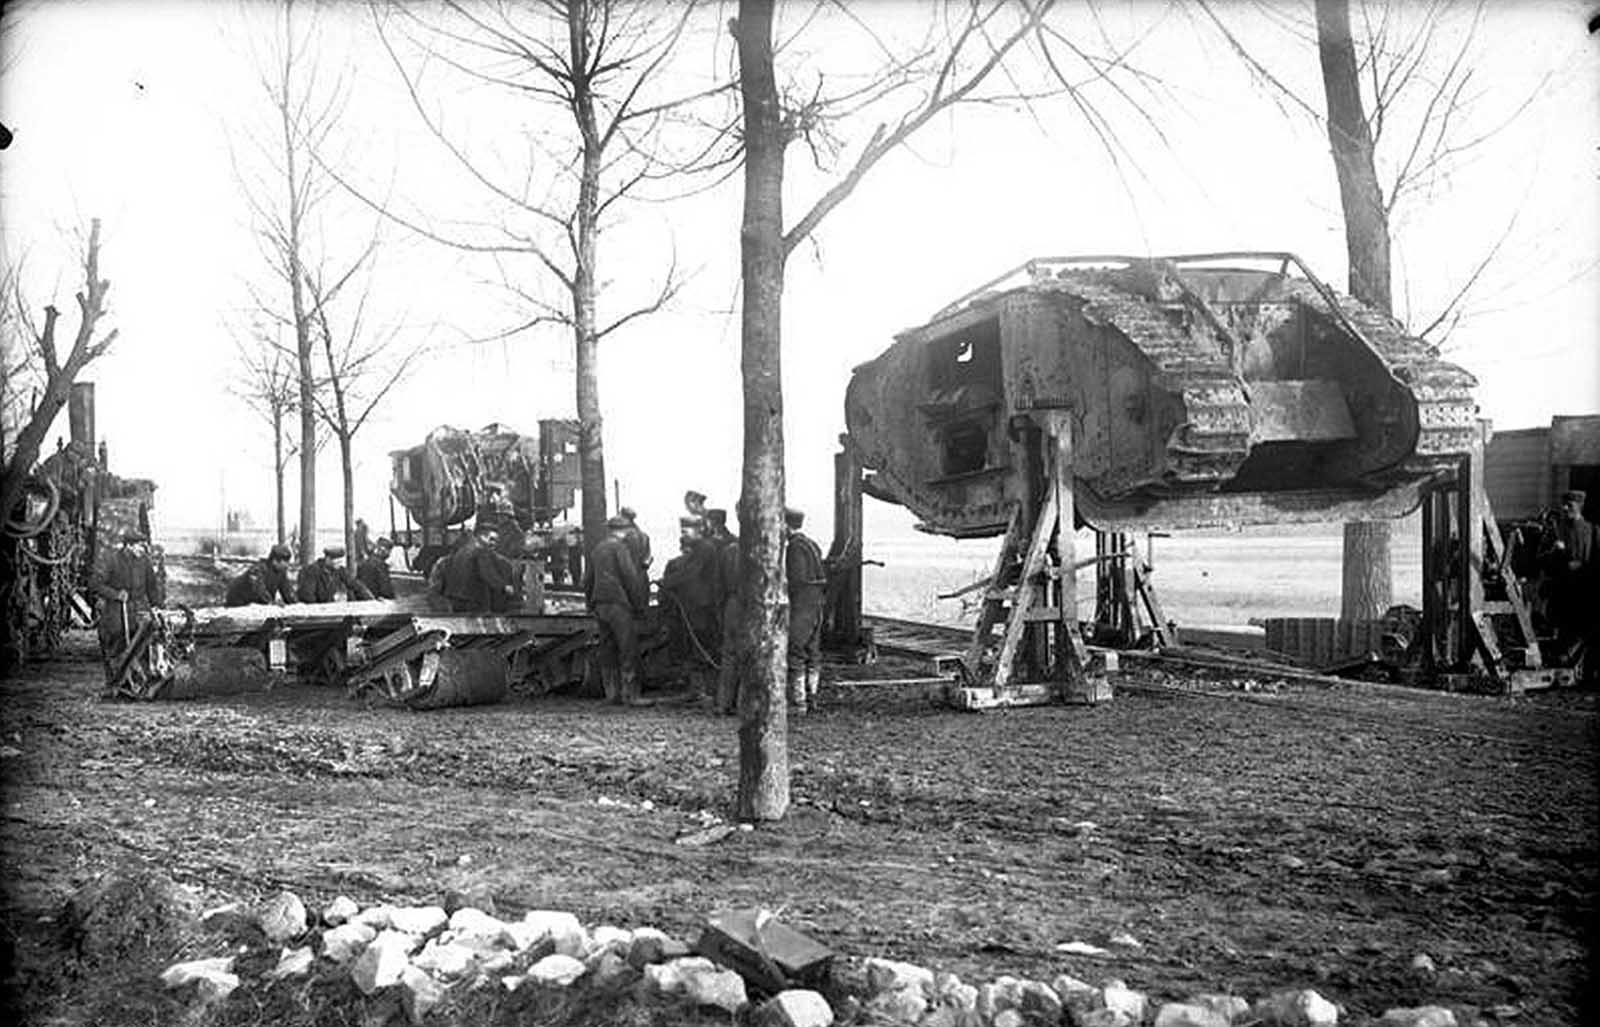 At Cambrai, German soldiers load a captured British Mark I tank onto a railroad, in November of 1917. Tanks were first used in battle during World War I, in September of 1916, when 49 British Mark I tanks were sent in during the Battle of Flers-Courcelette.